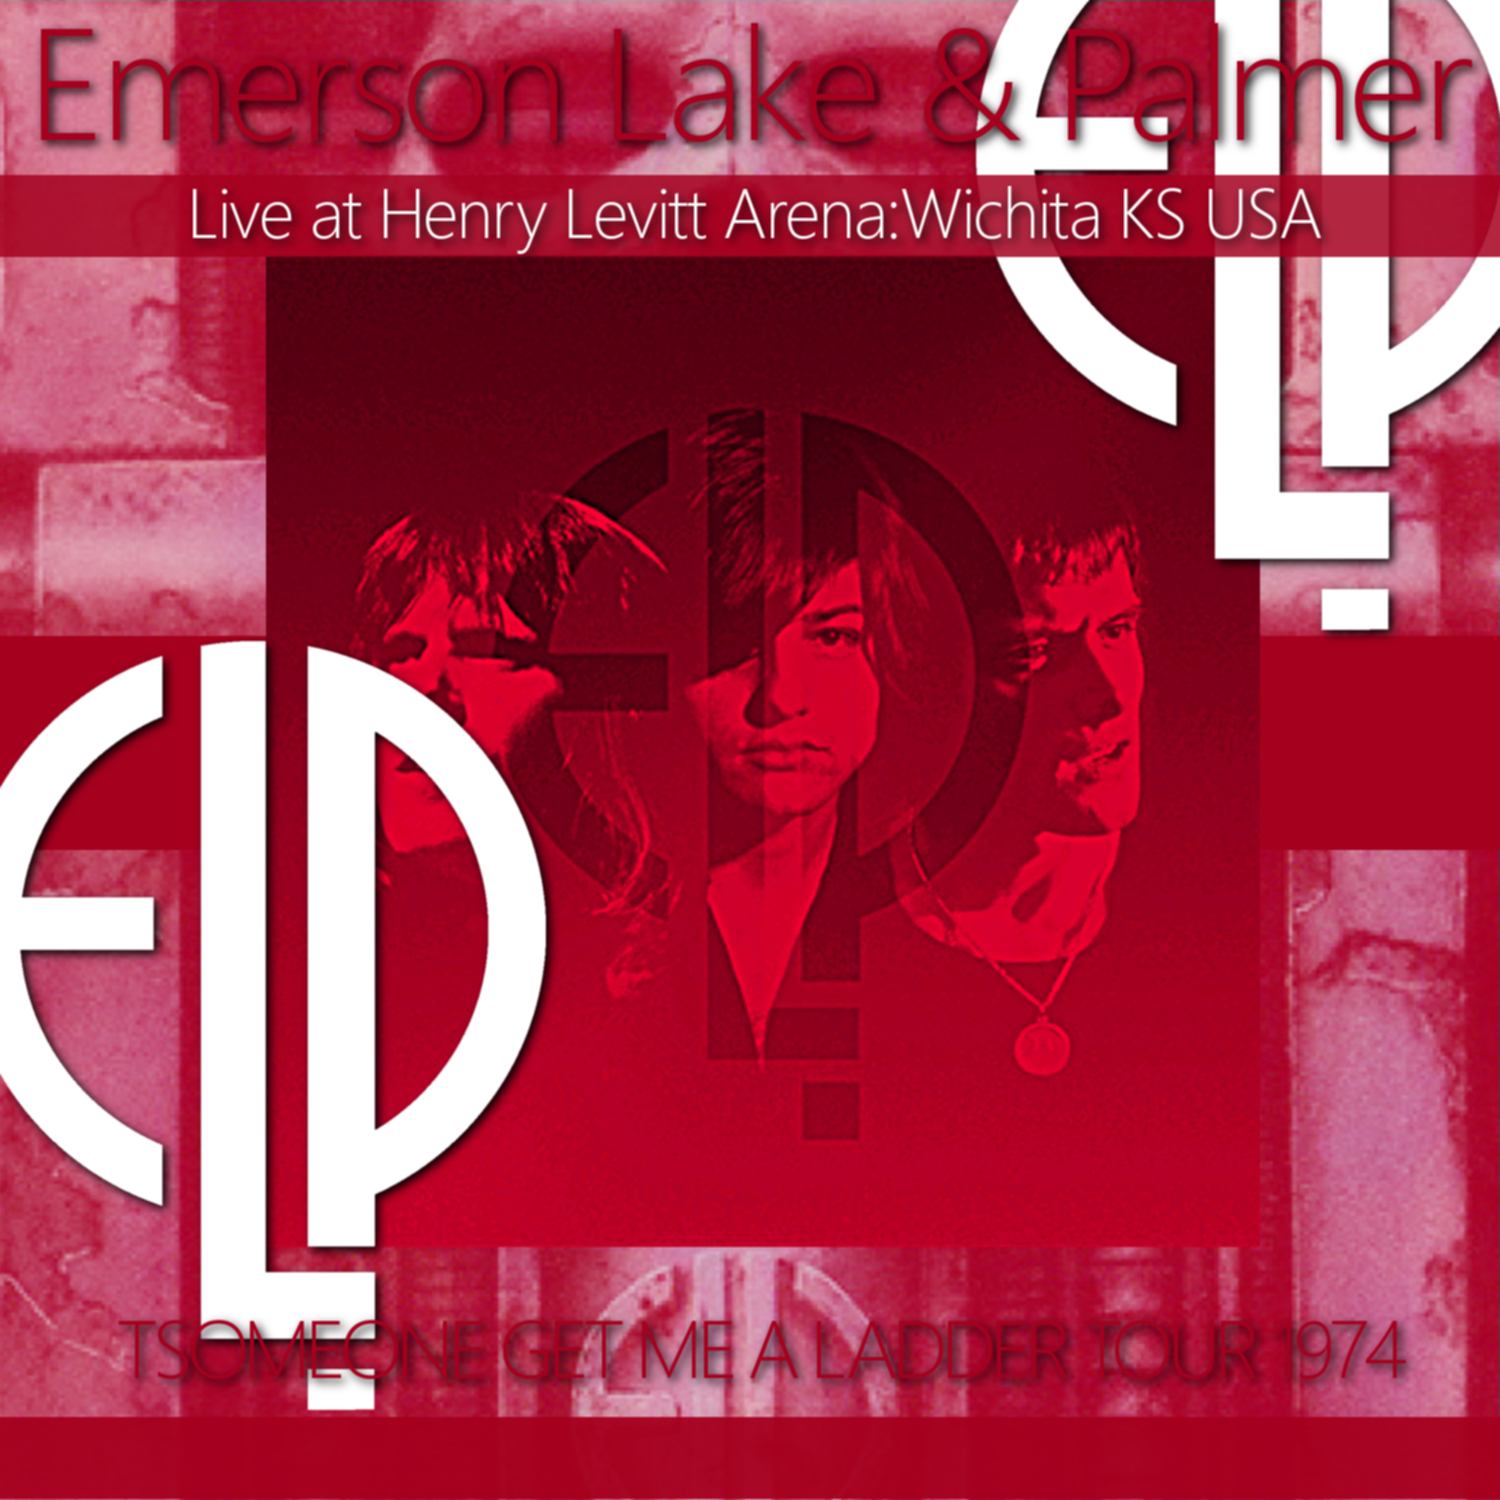 コレクターズCD Emerson, Lake & Palmer - Someone Get Me A Ladder Tour 1974